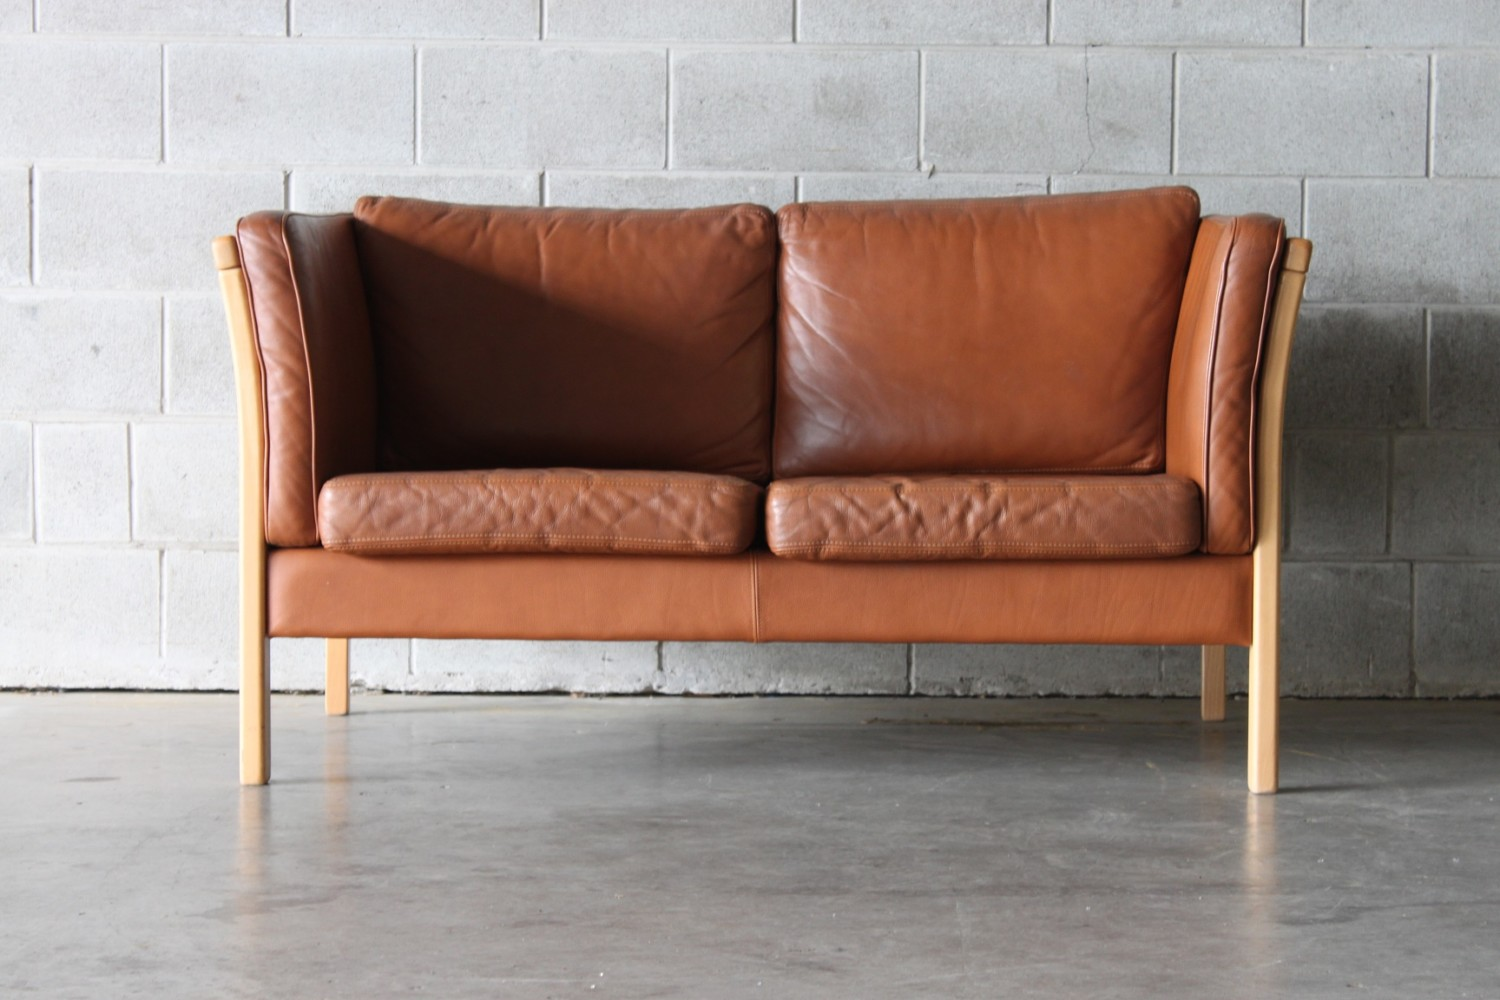 Tan Leather 2 Seater Sofa The Vintage Shop